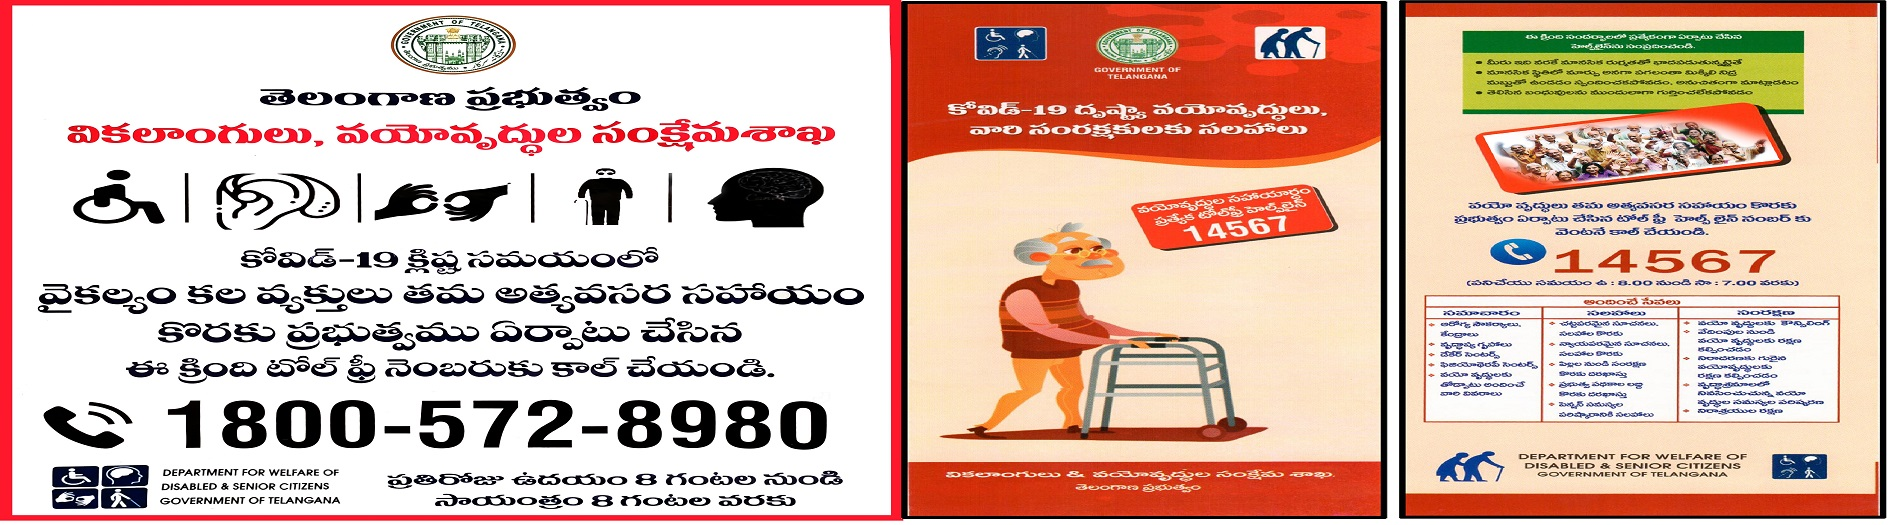 PWD and Senior Citizens Toll Free Poster.